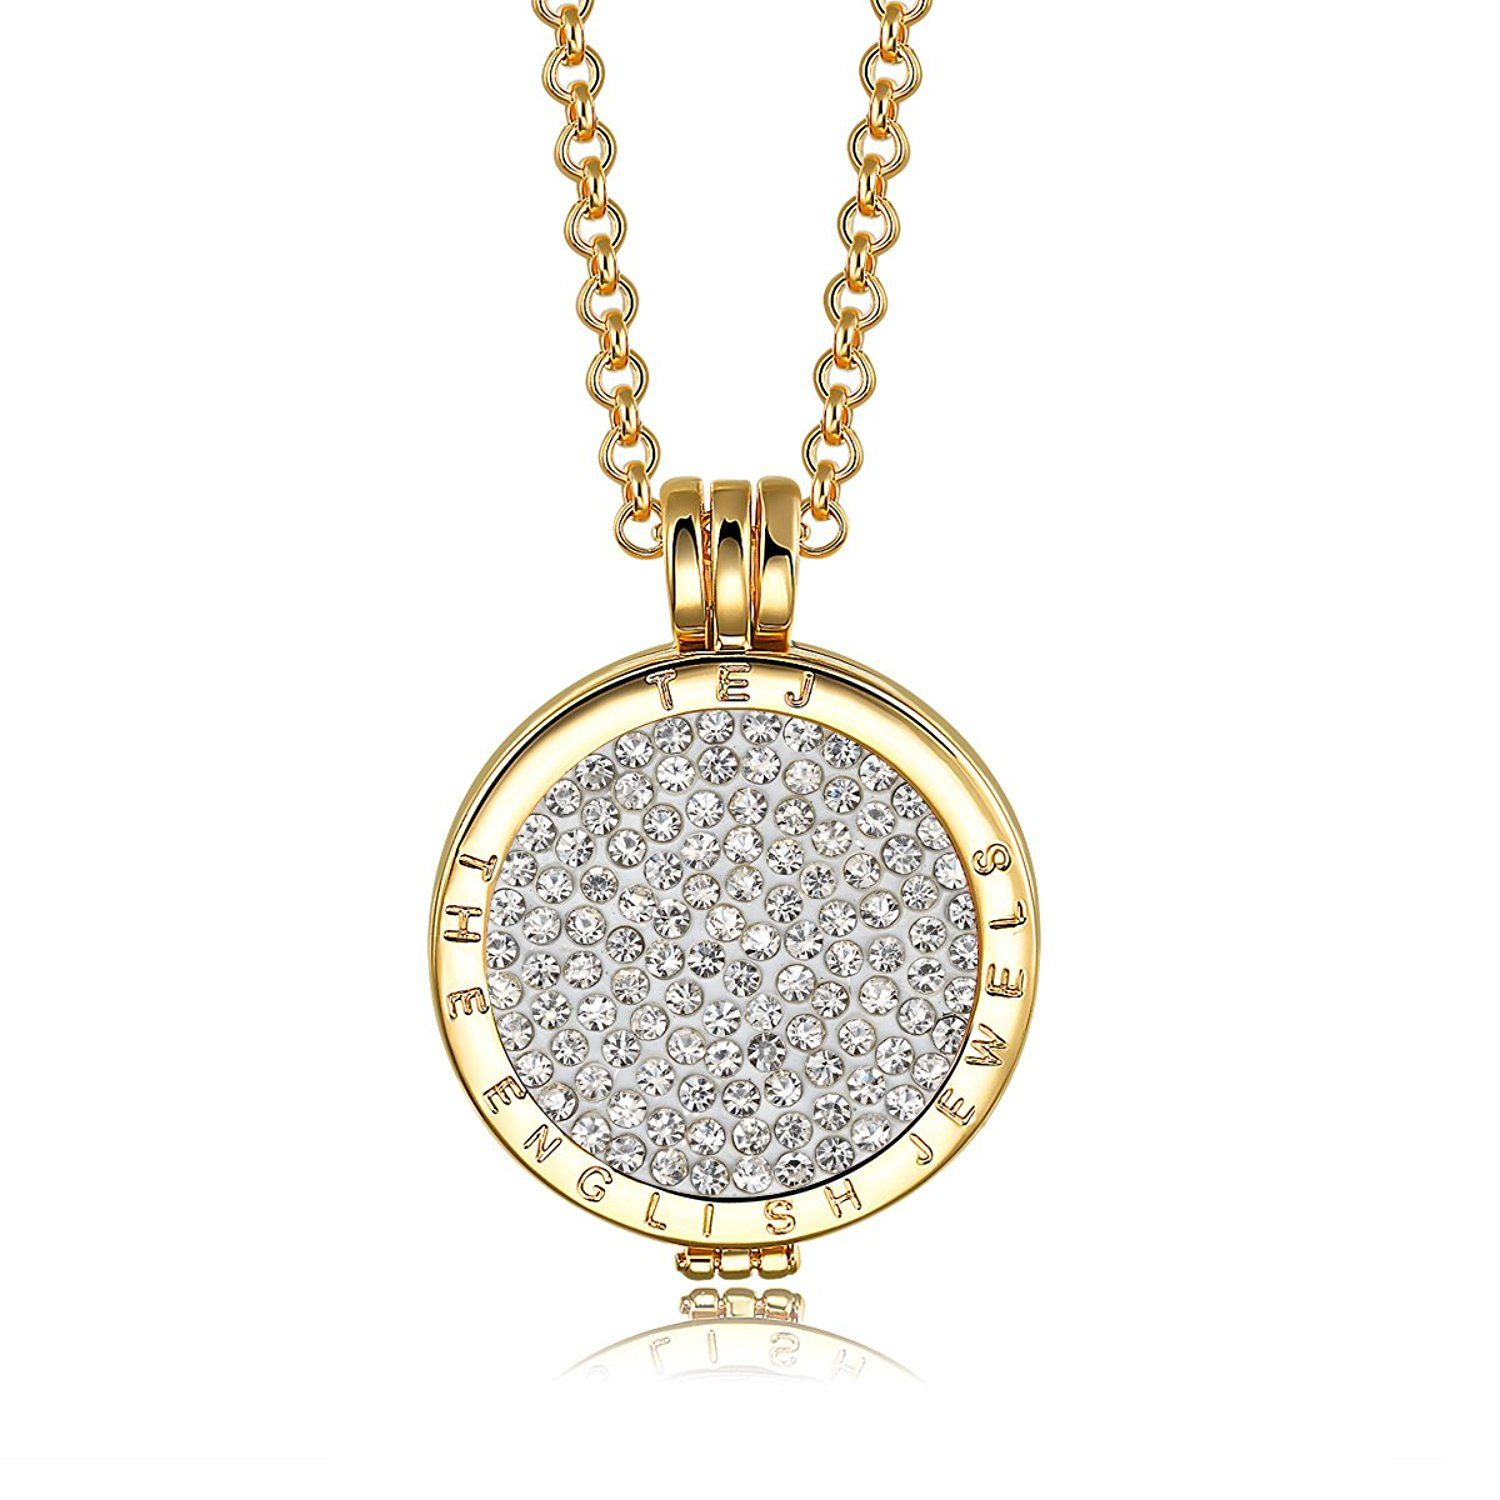 Interchangeable Coin Pendant Necklace Silver Plated including Belcher Chain '25-30 inch - White UYRVfVfi7G